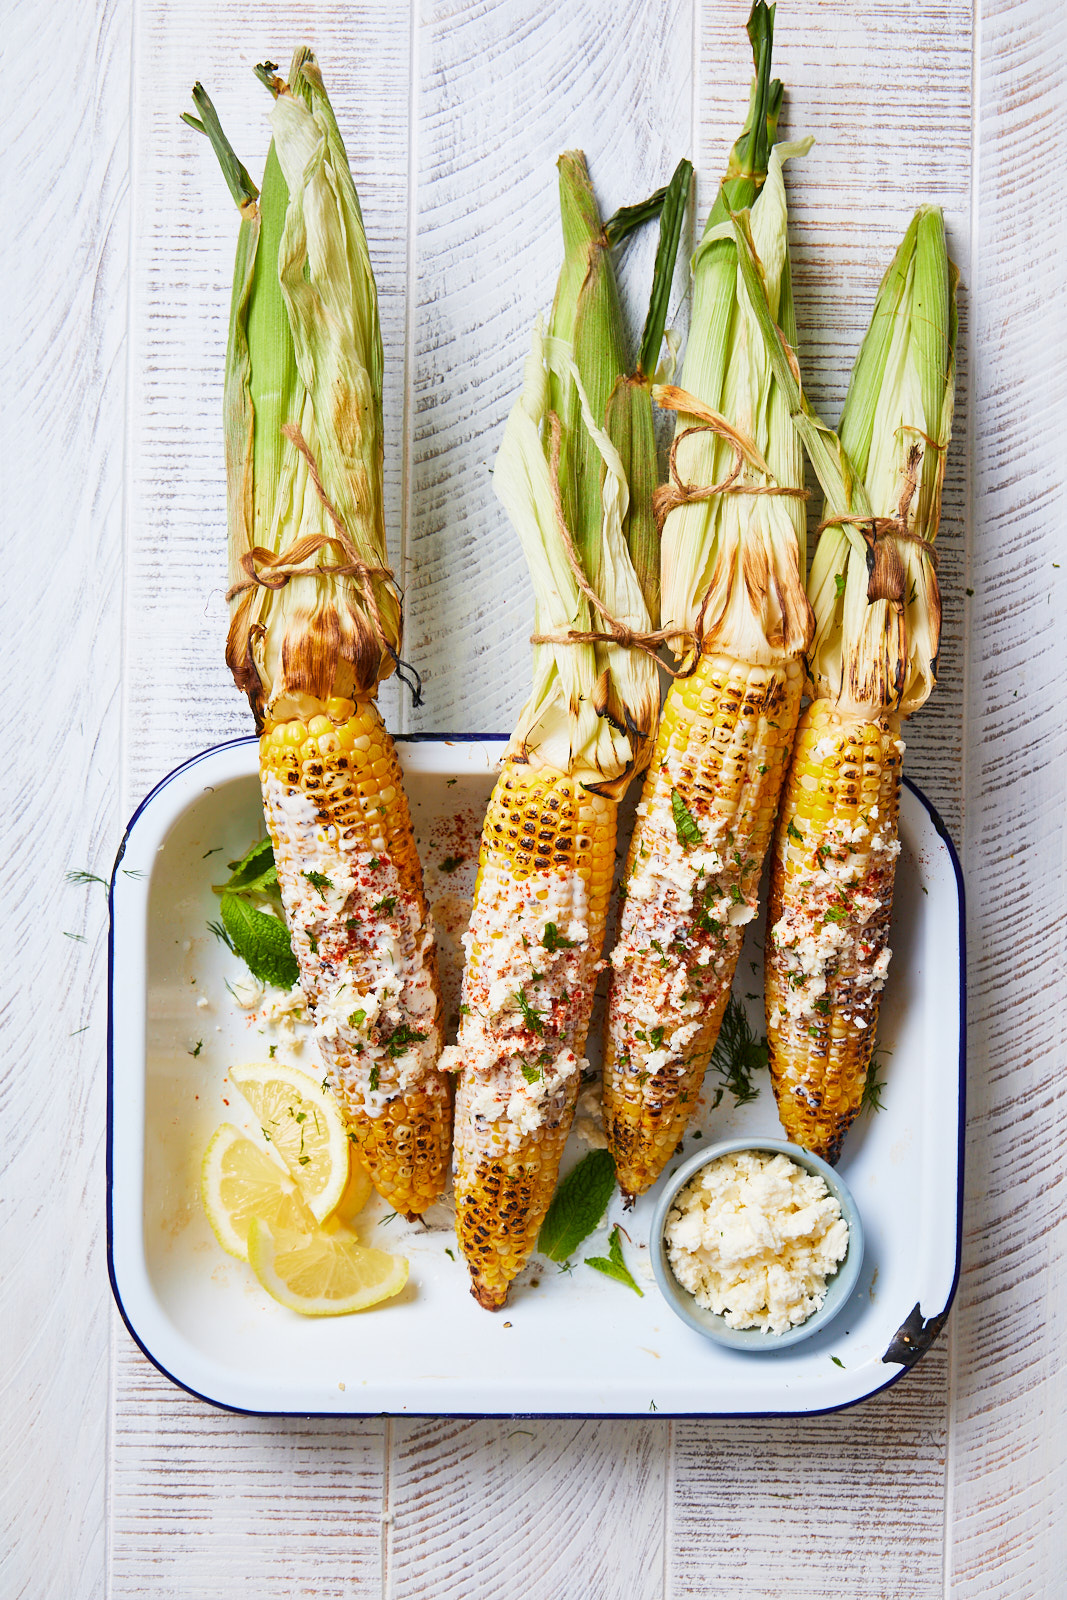 Mexican Street Corn (Elote) Done Greek Style